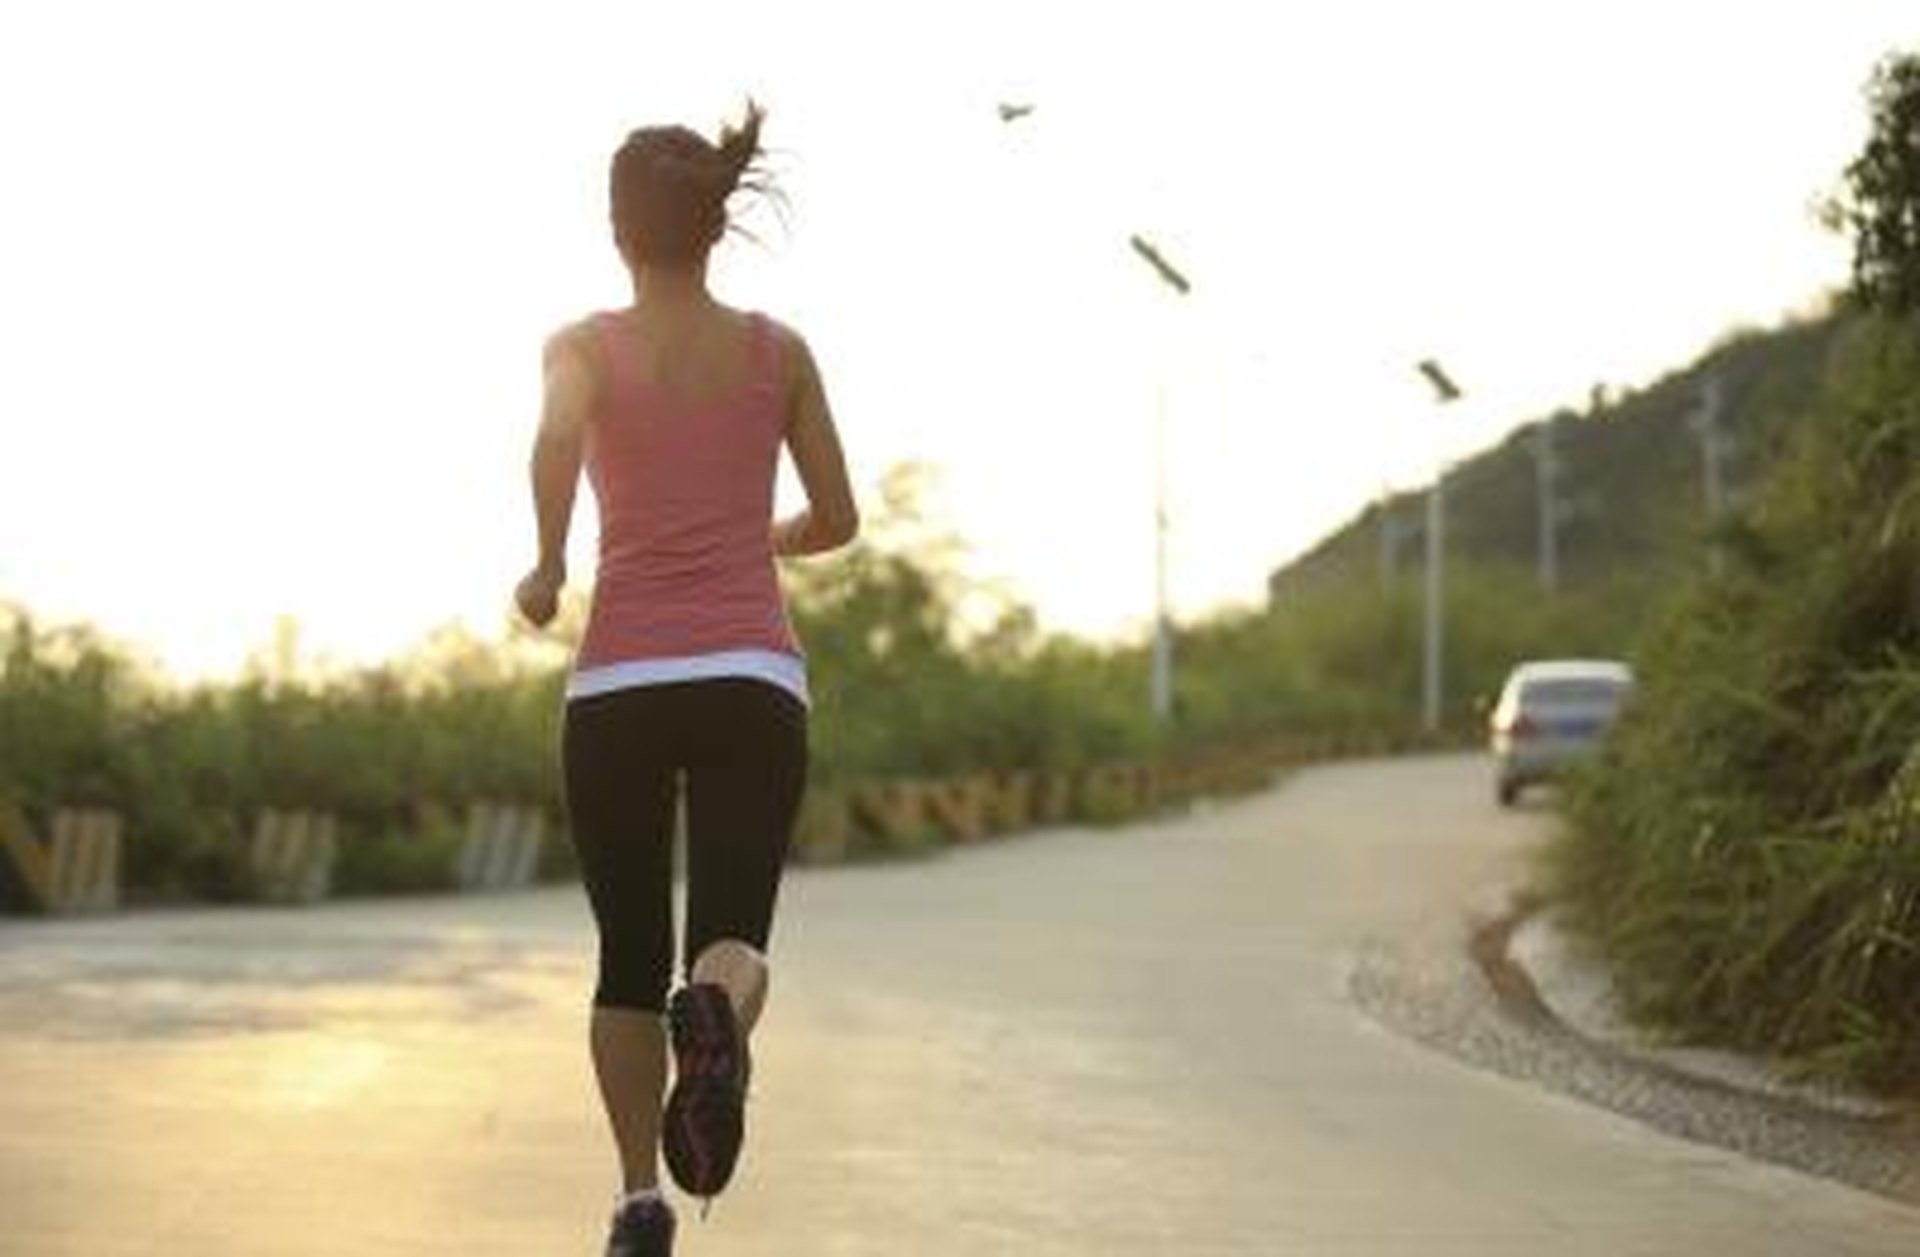 How to Jog Without Any Lower Back Pain forecasting